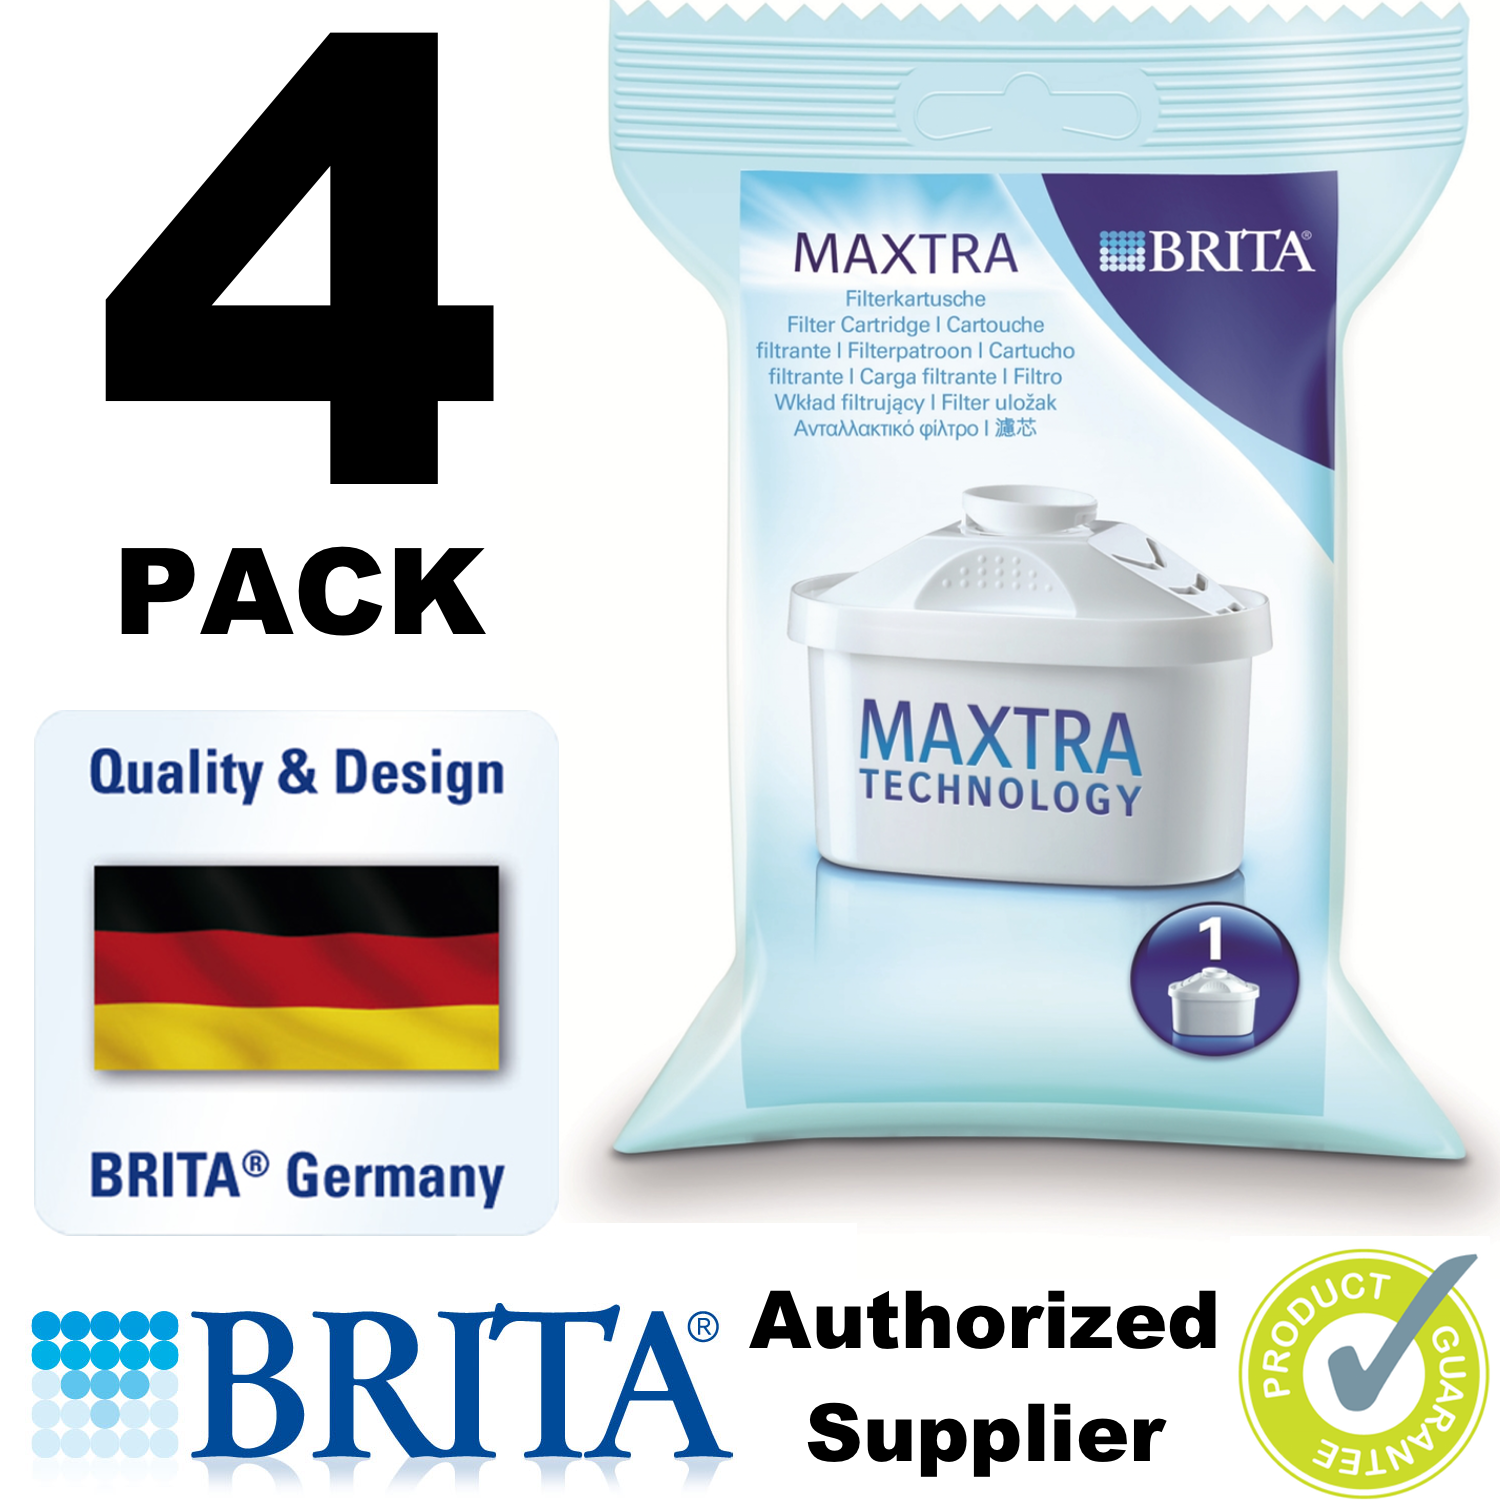 BRITA MAXTRA Water Filter Jug Refills Genuine Replacement Cartridges - PACK OF 4